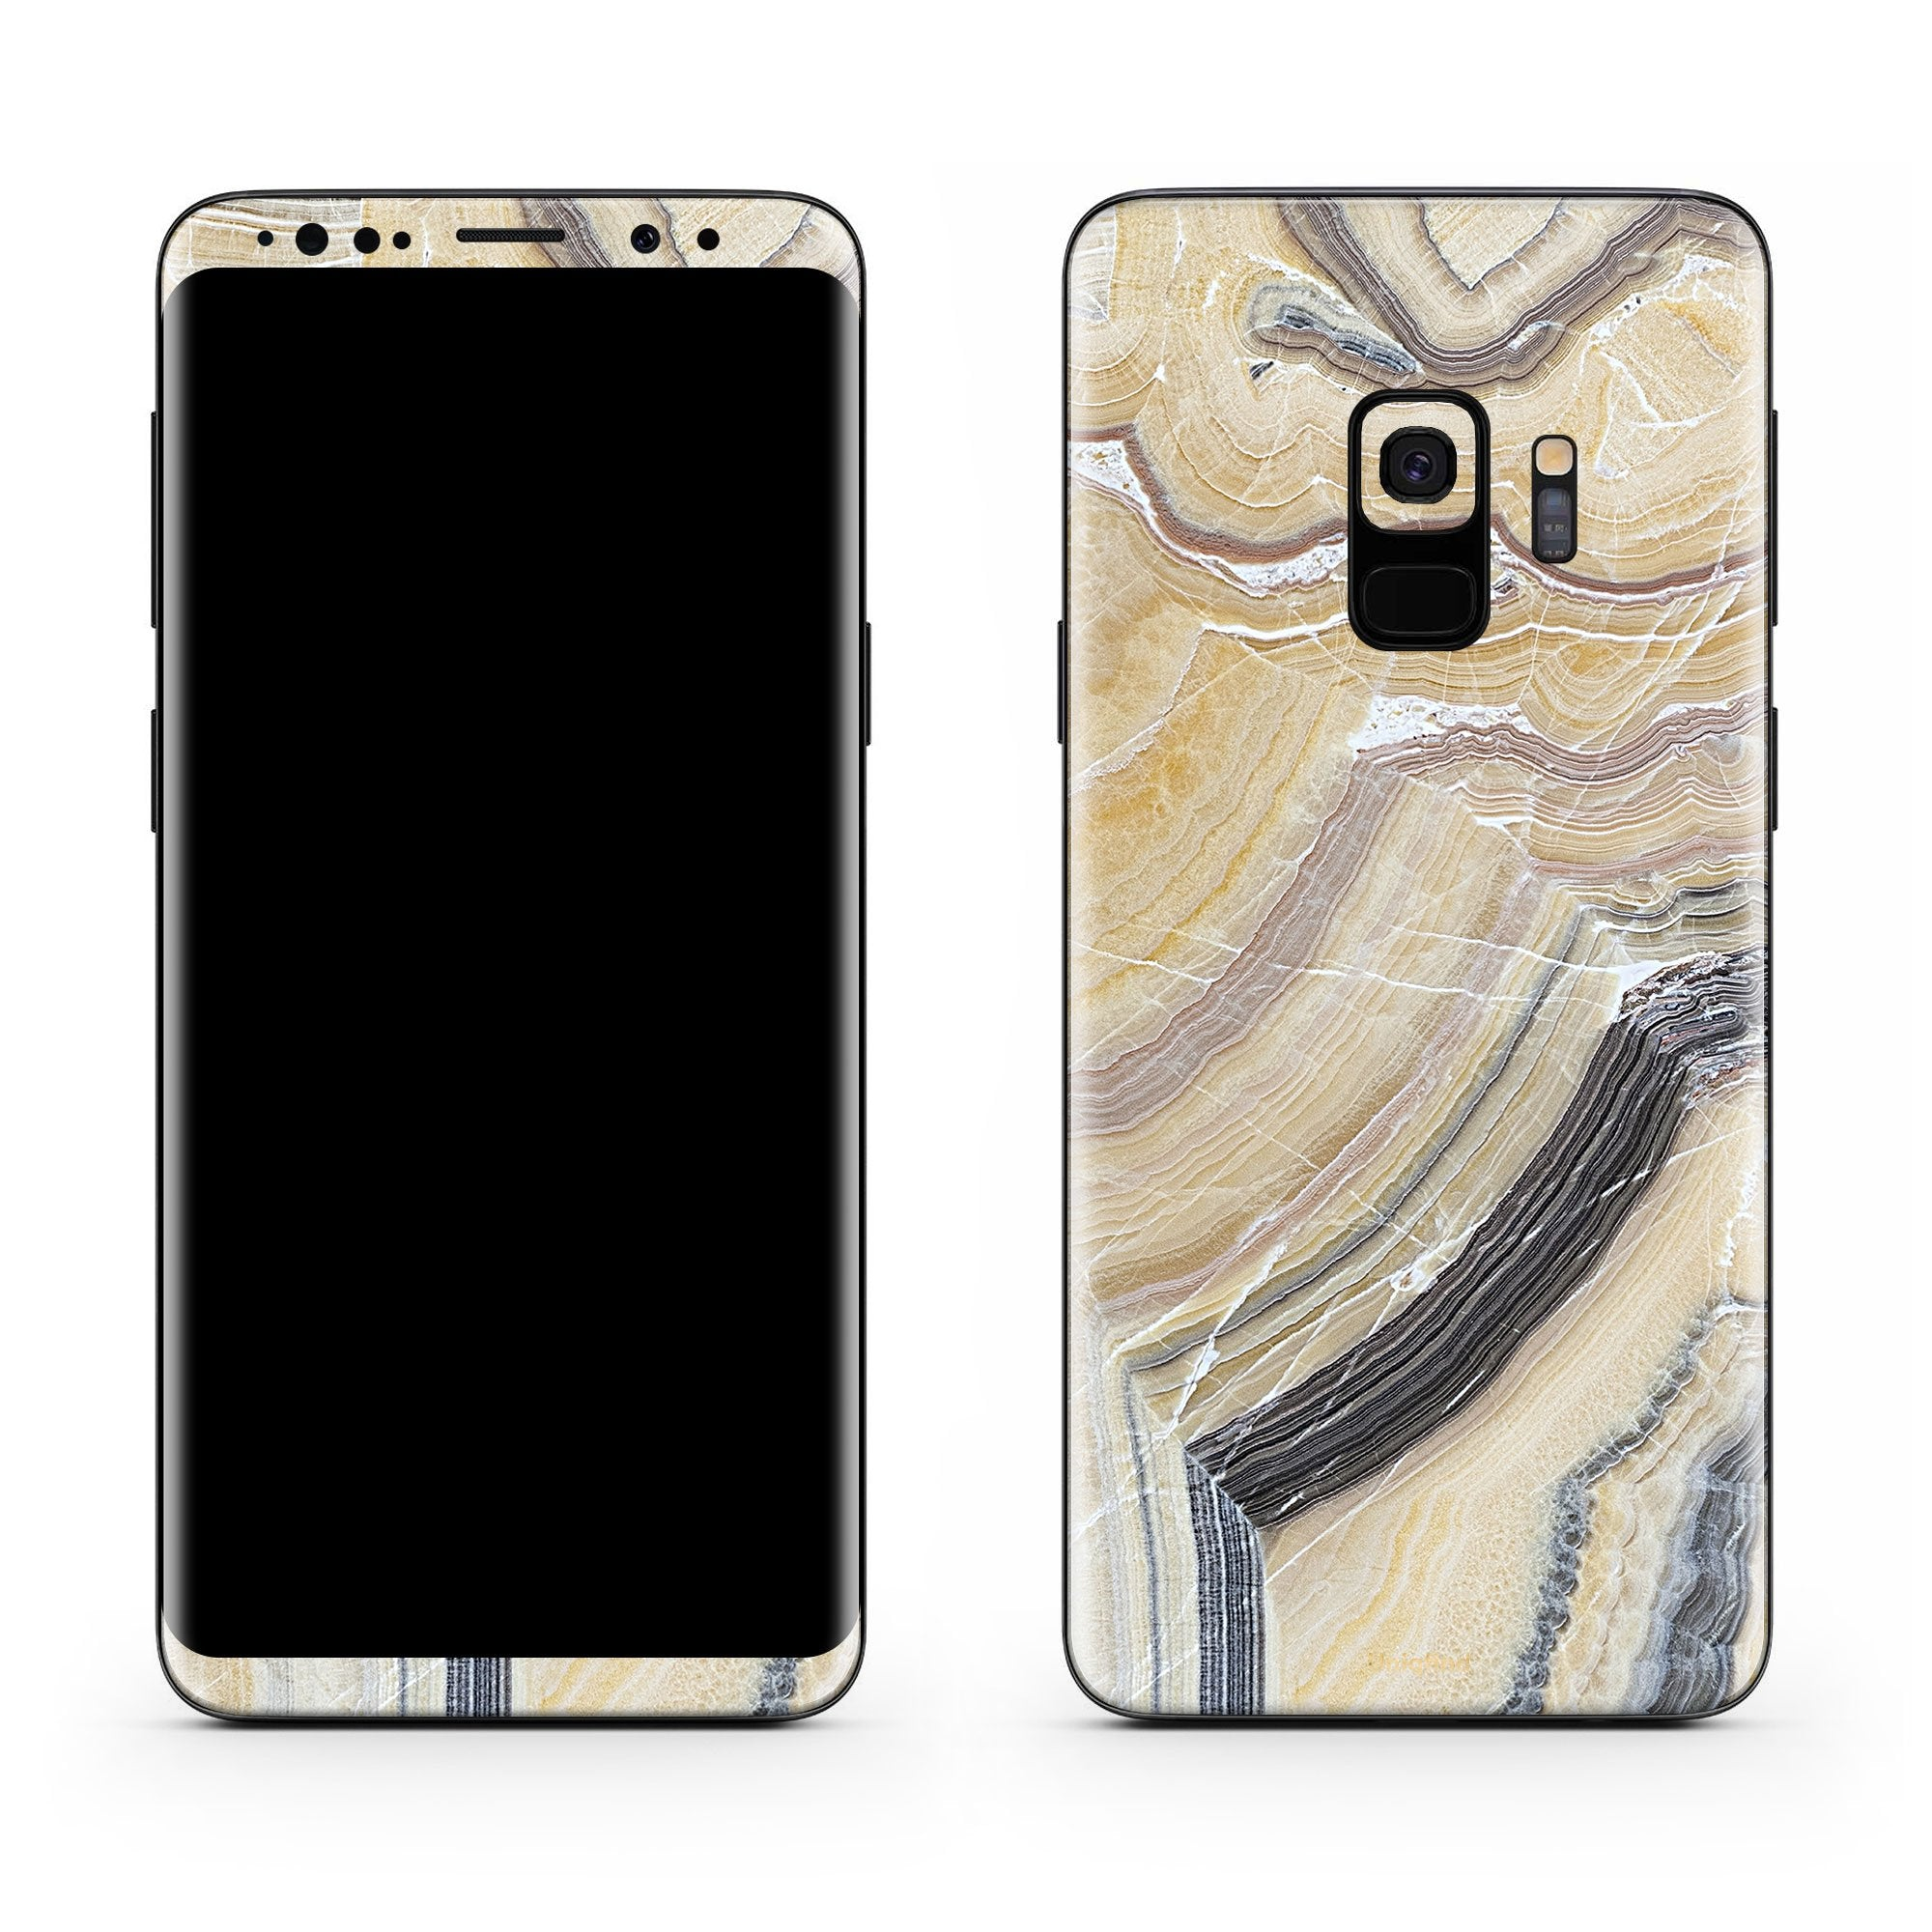 Butter Marble Galaxy S9 Plus Skin + Case